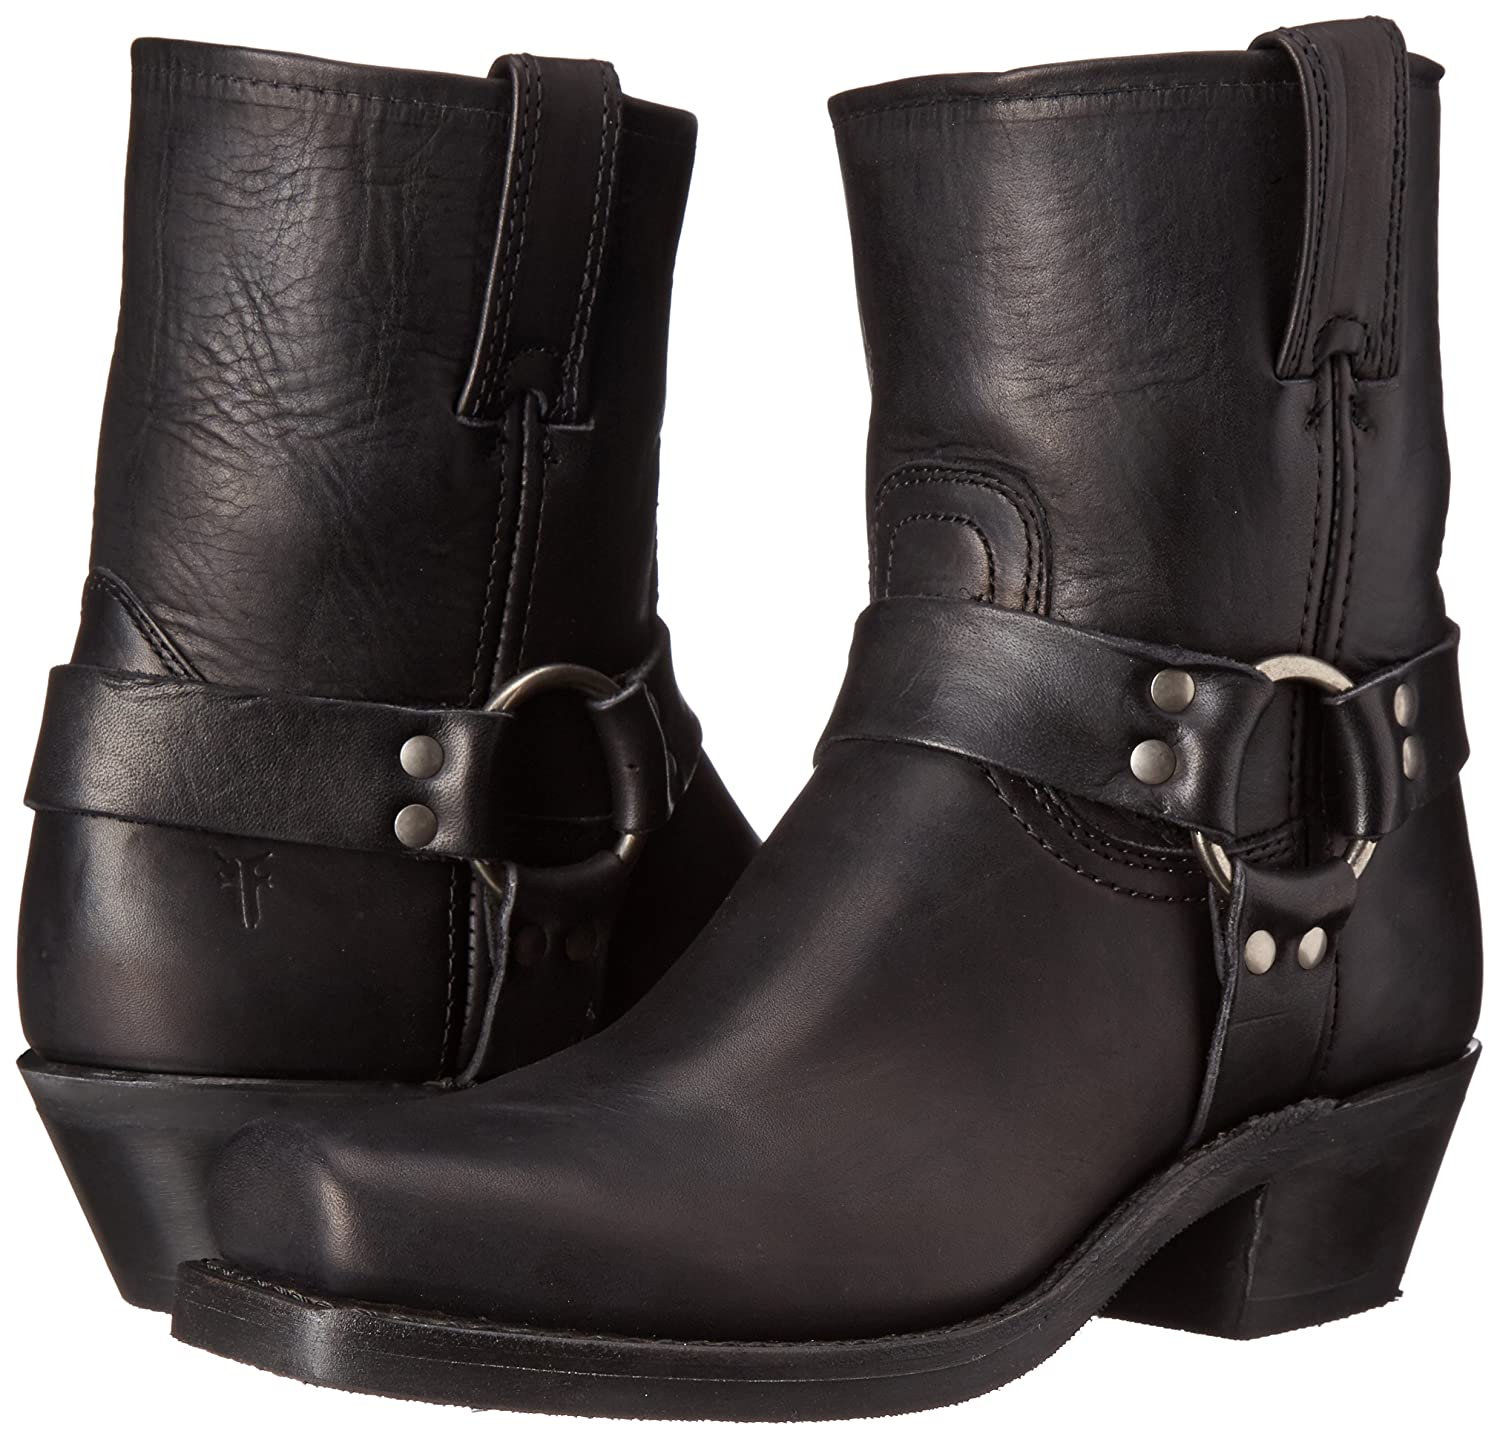 FRYE Women's 8R-Wshovn Harness Boot B00R54U9QE 9 B(M) US|Black